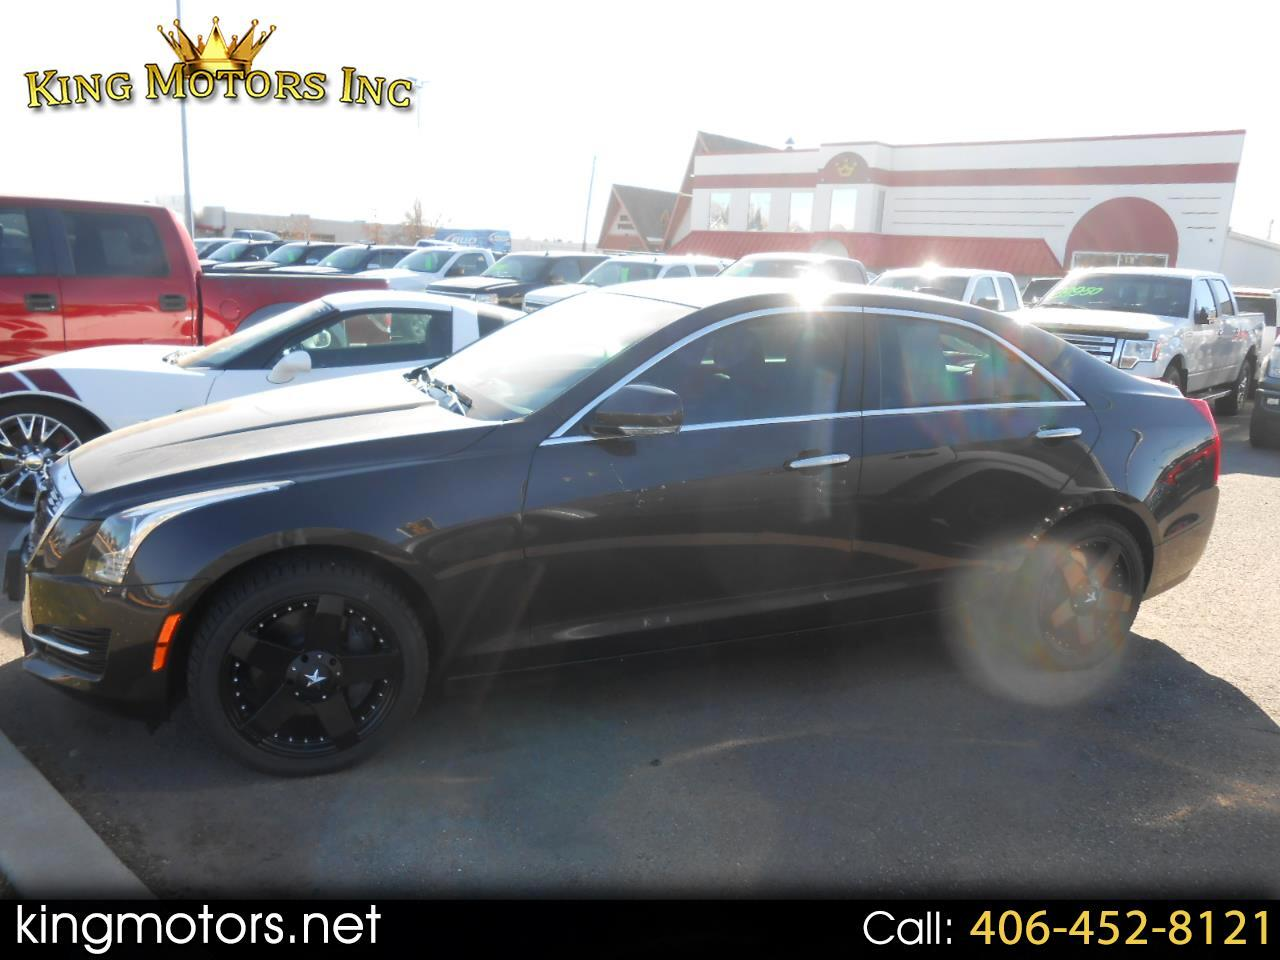 2015 Cadillac ATS Sedan 4dr Sdn 3.6L Luxury AWD